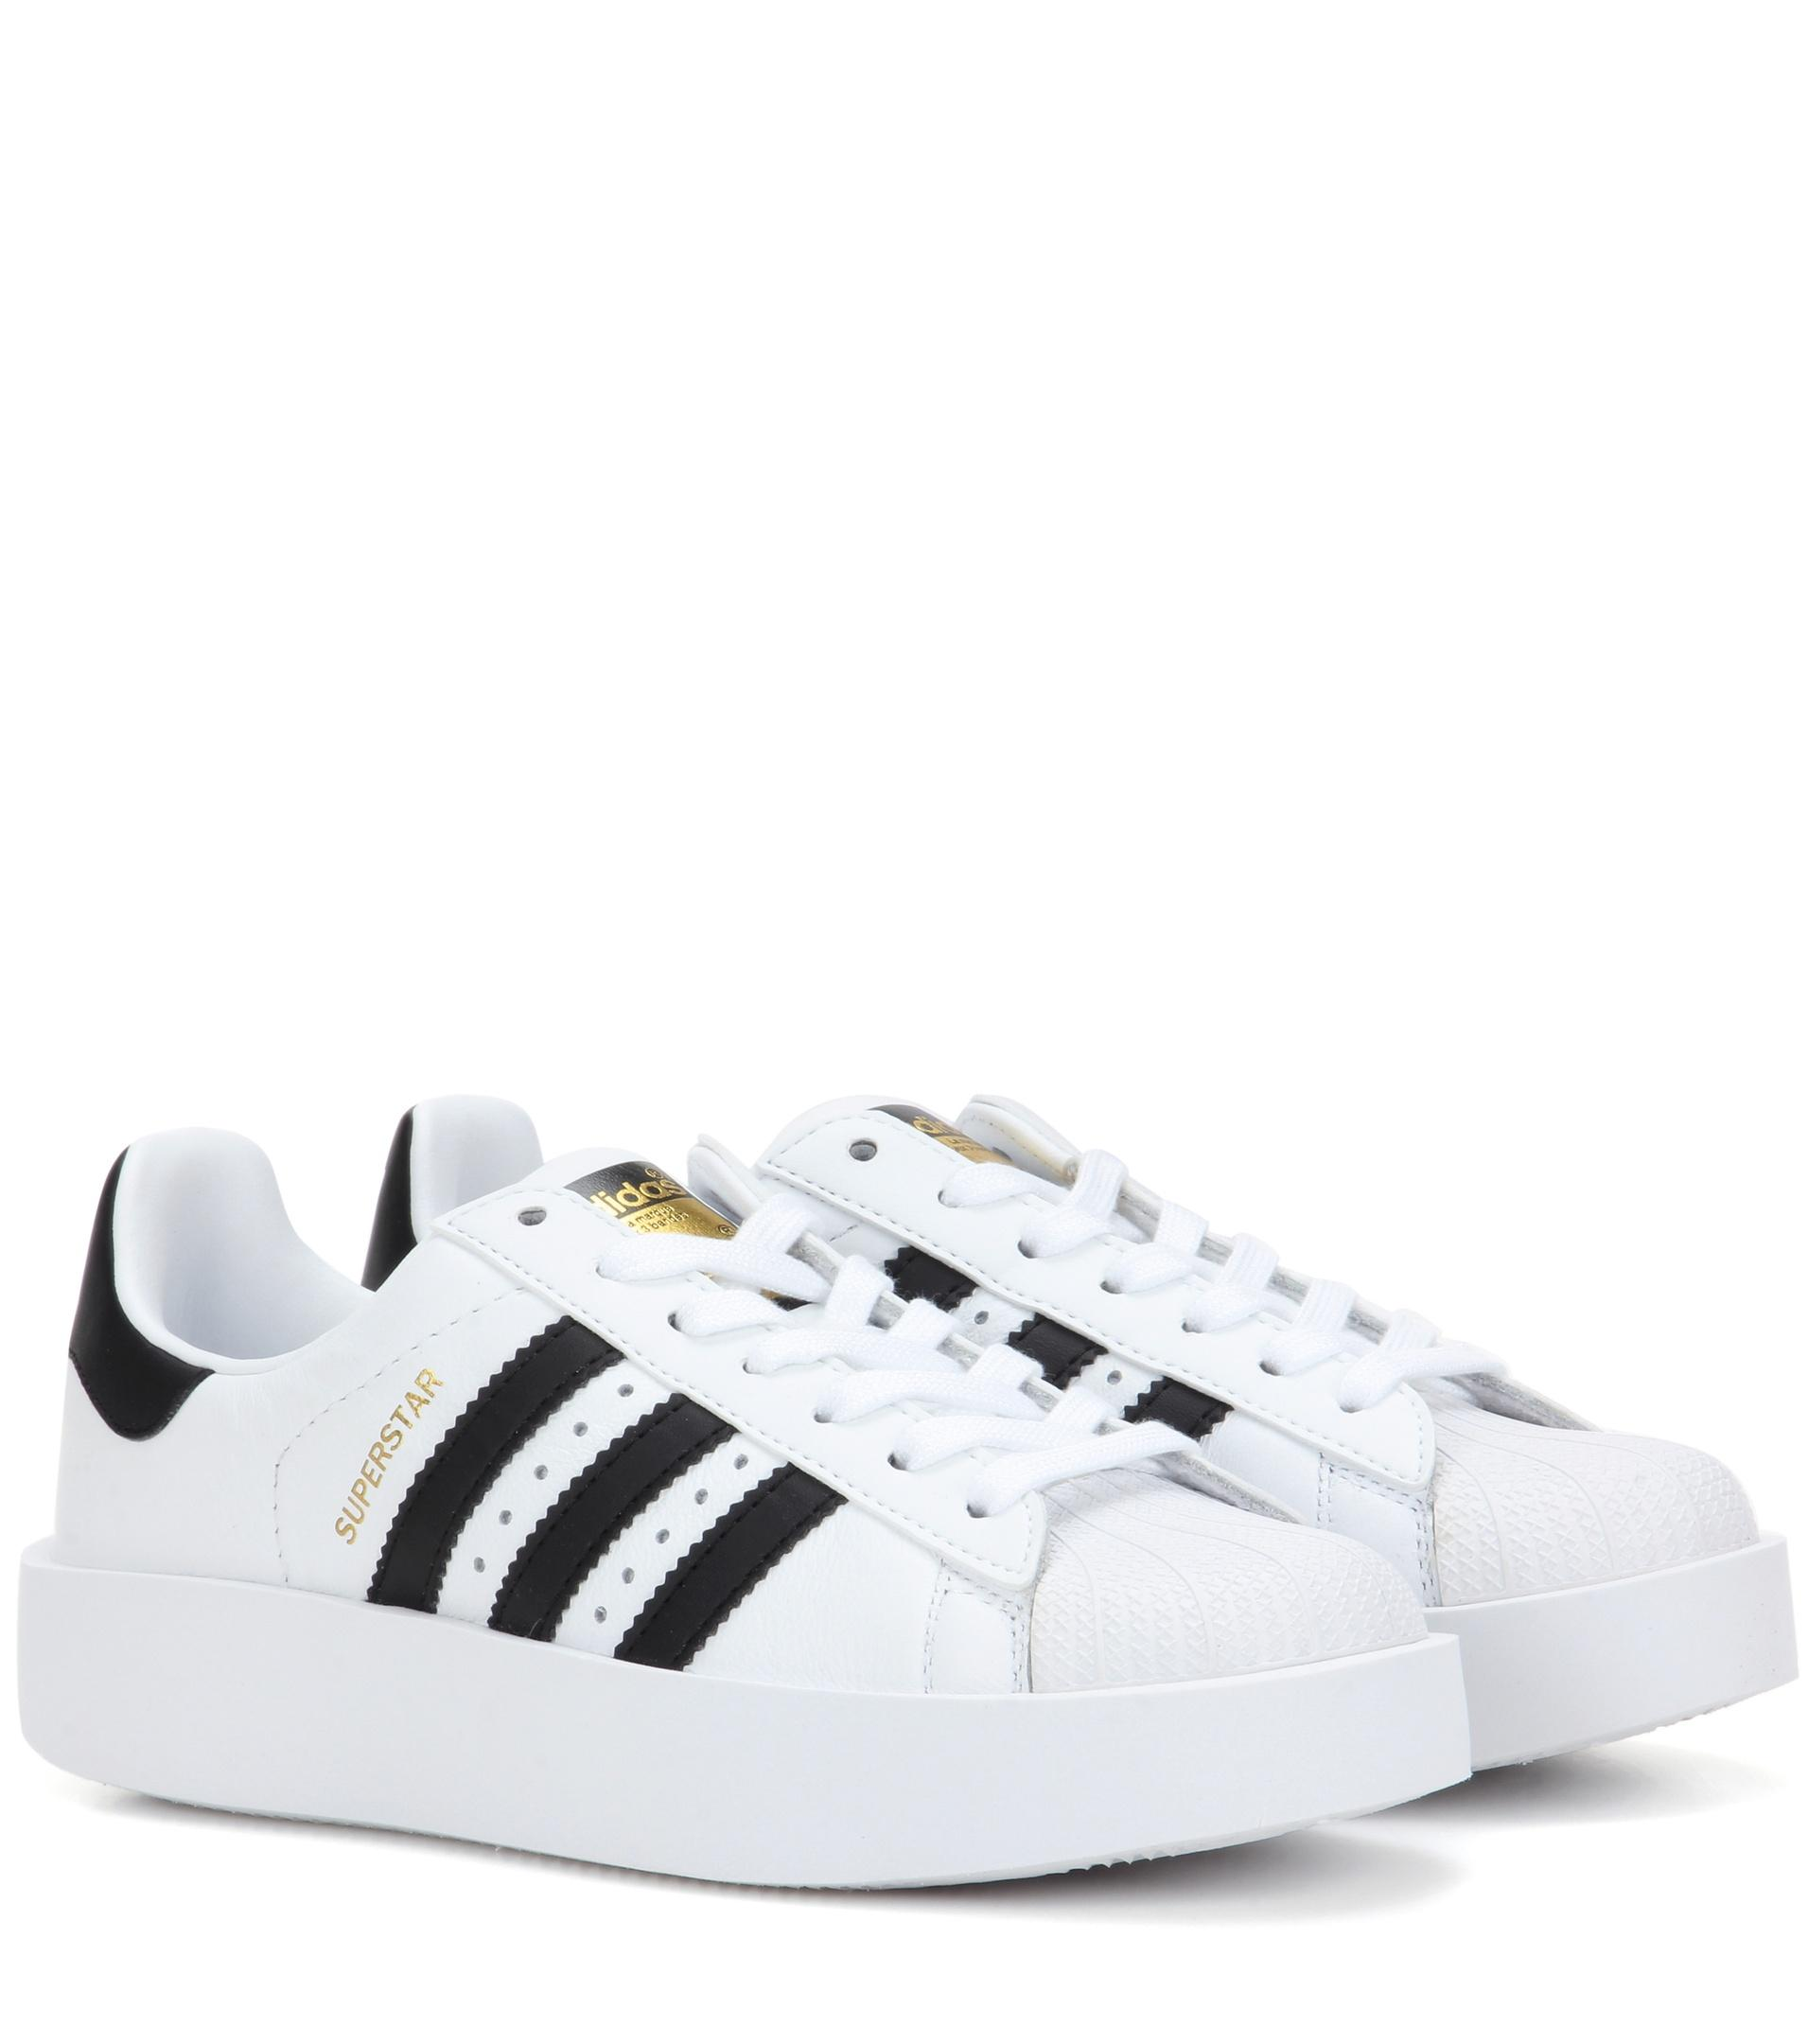 7fef589d3e62 Lyst - adidas Originals Superstar Bold Leather Sneakers in White